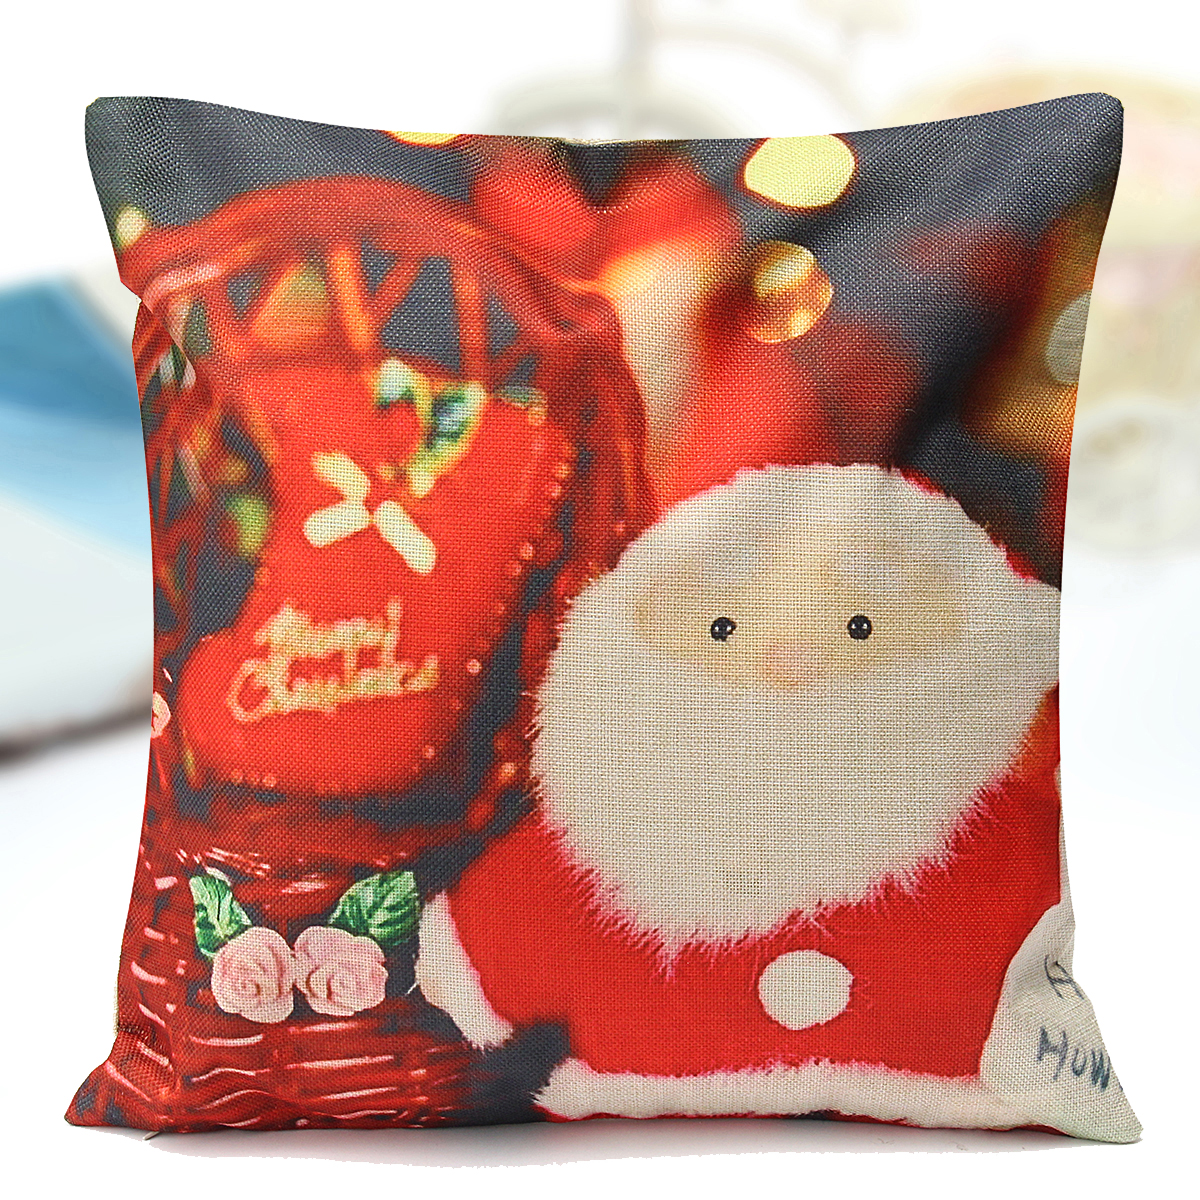 """18""""x18"""" 6 Style Christmas Santa Claus Deer Snowman Printing Pillow Cases Home Car Couch Sofa Chair Cushion Covers Decorate"""